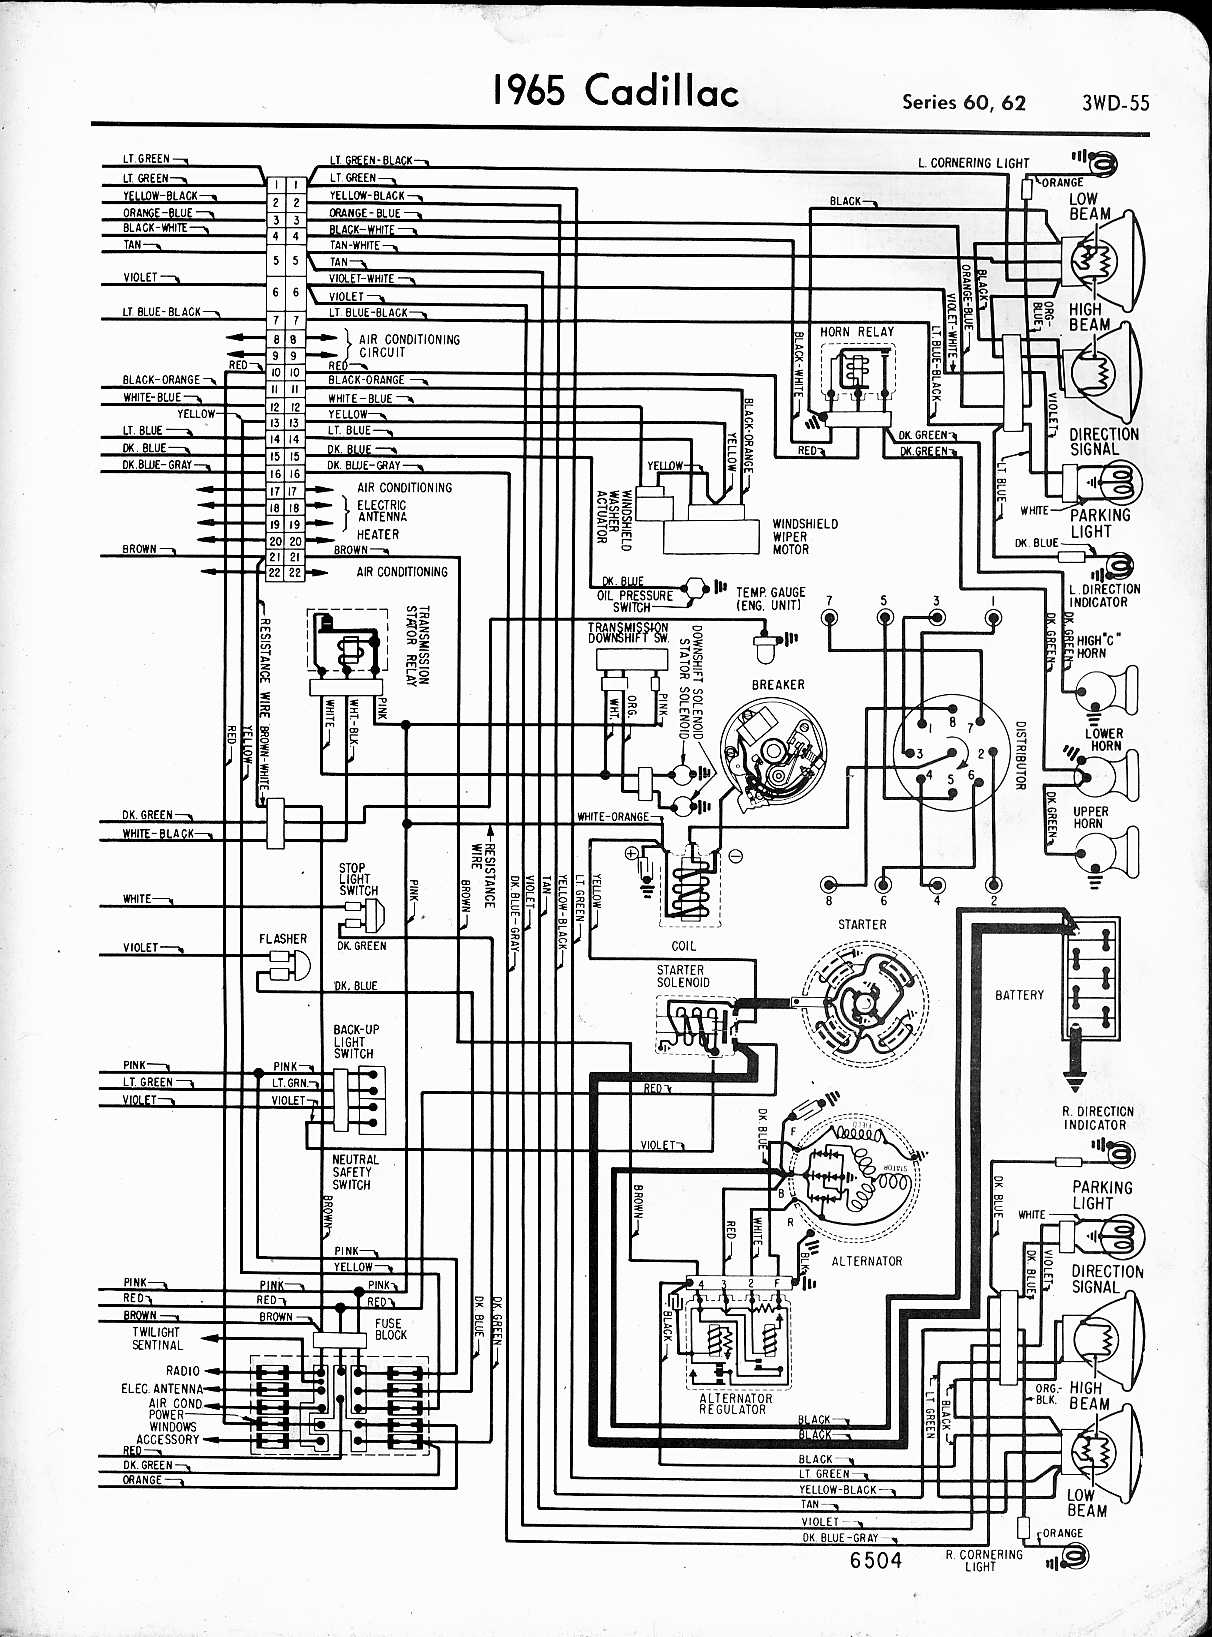 MWireCadi65_3WD 055 cadillac wiring diagrams 1957 1965 1999 cadillac fuse box diagrams at nearapp.co